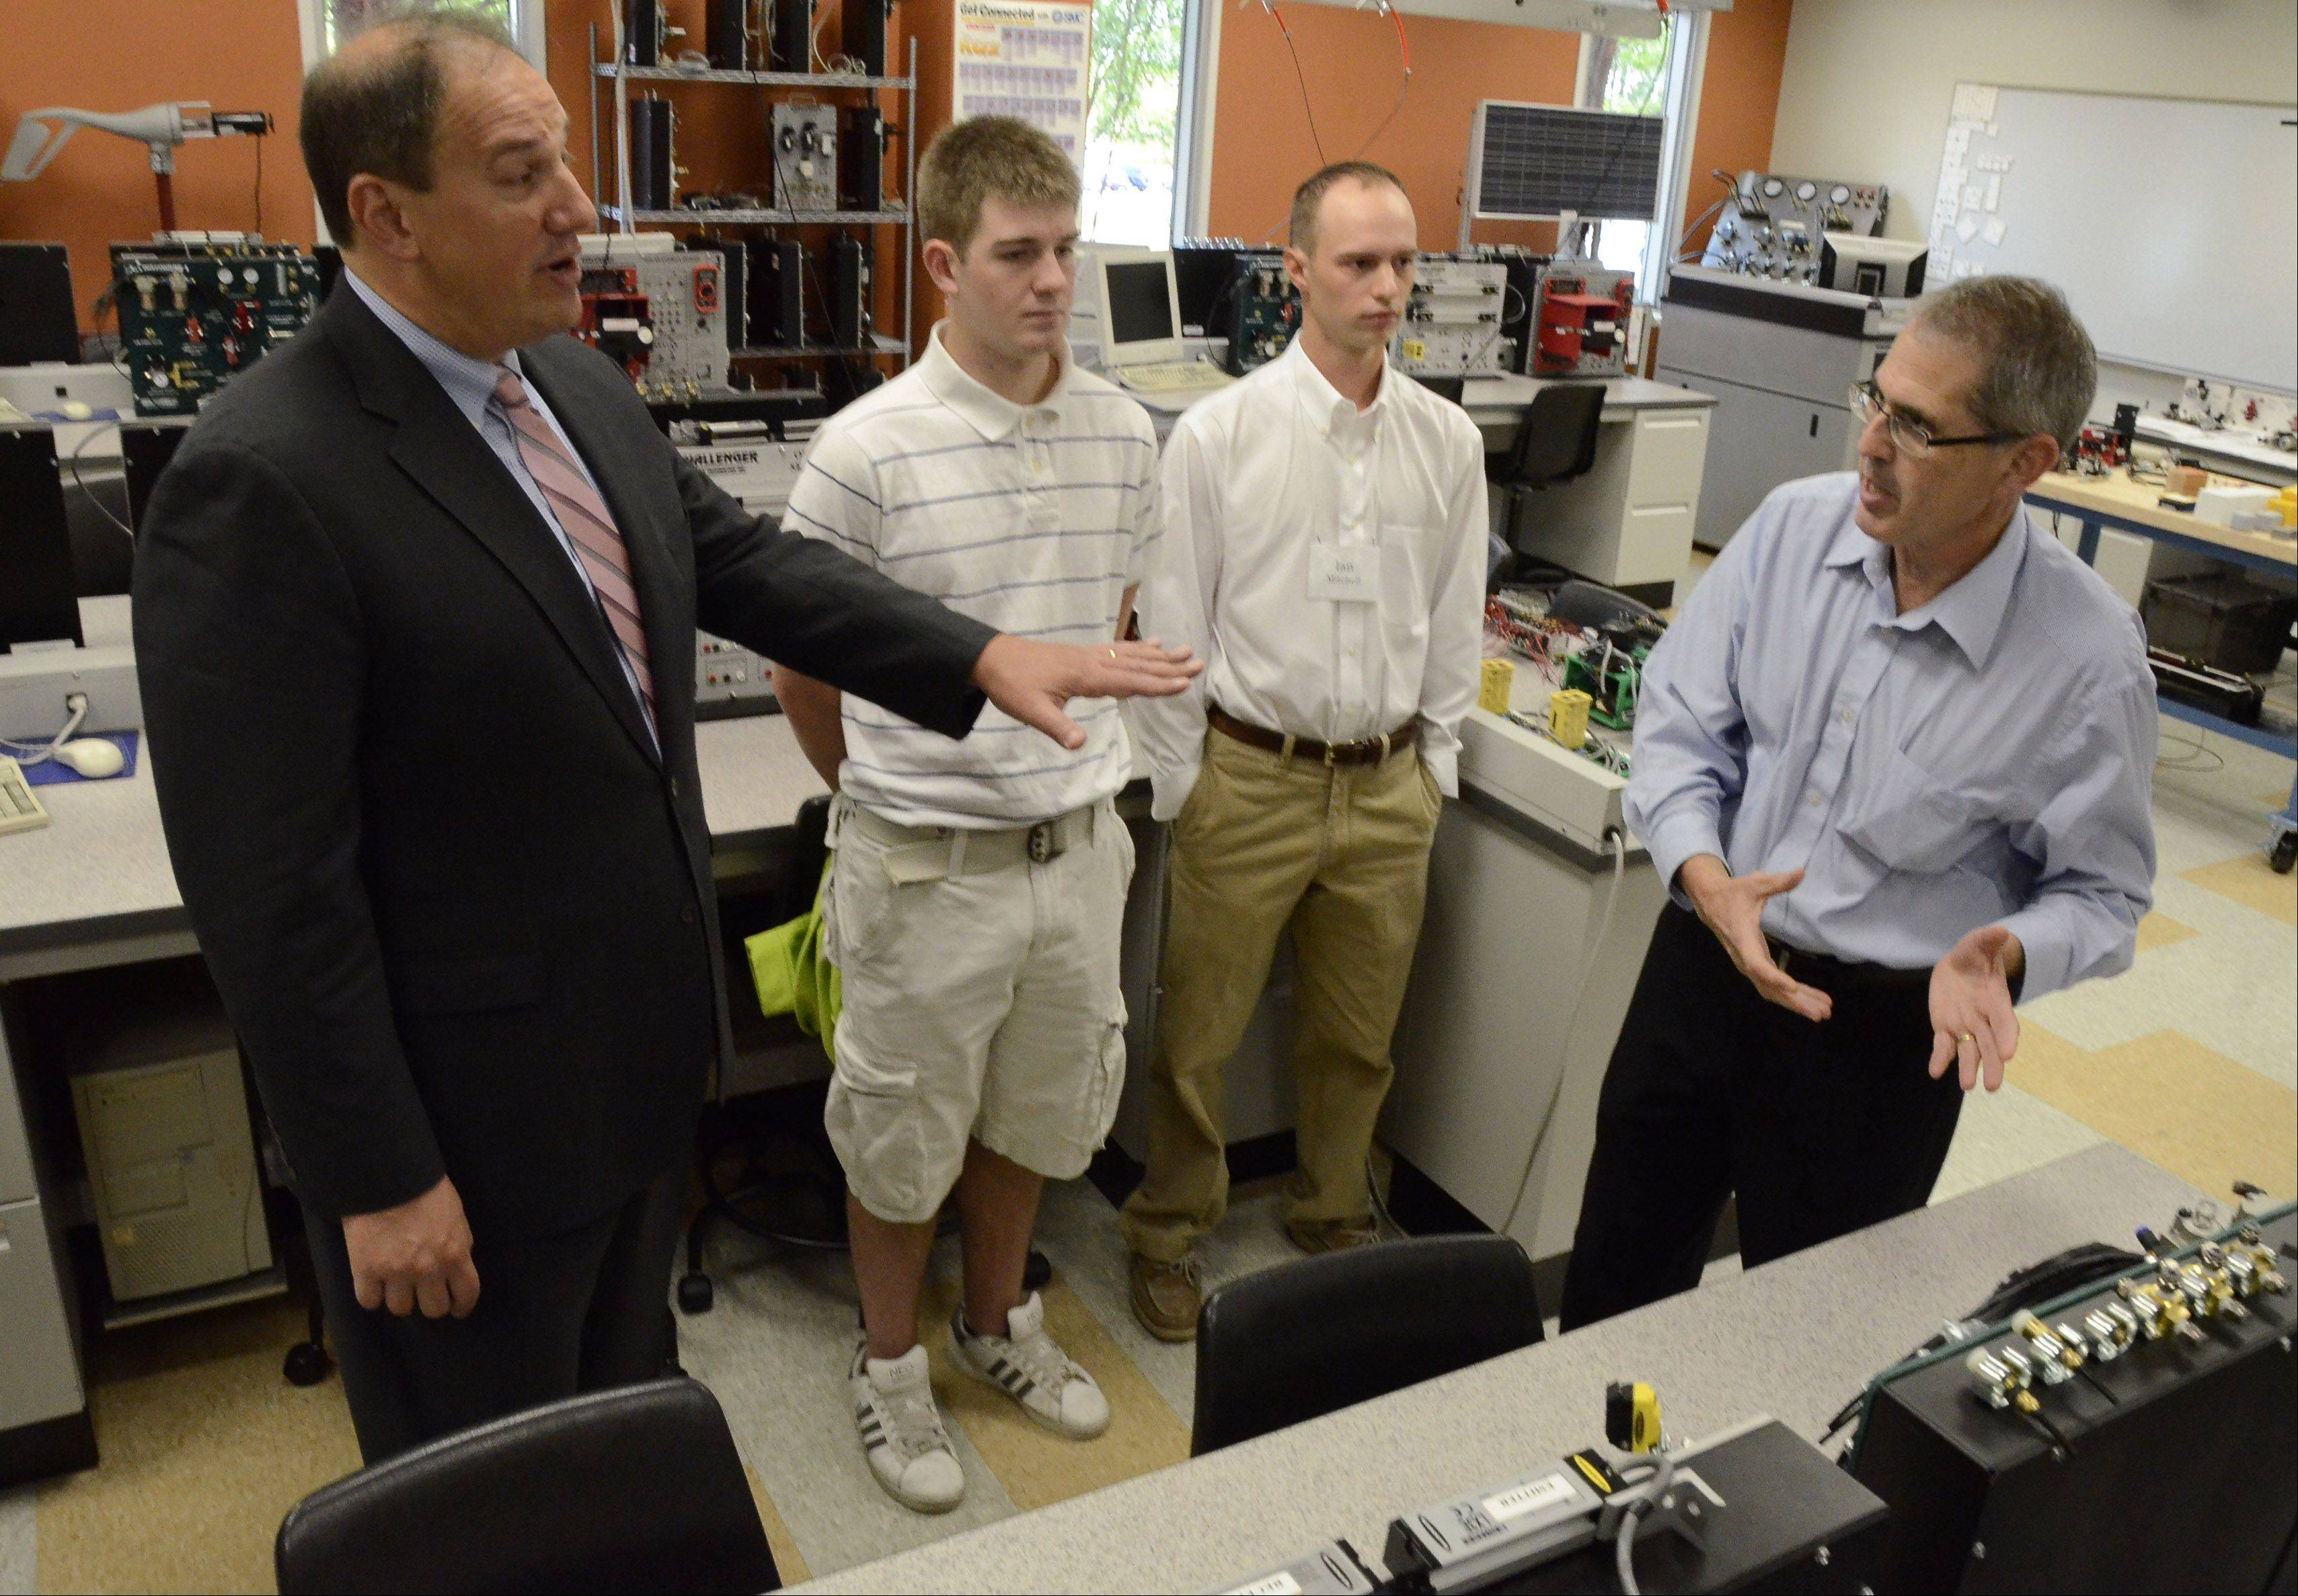 U.S. Department of Labor Deputy Secretary Seth Harris, from left, talks with students Curtis Willuweit of Hoffman Estates, Ian Mitchell of Deer Park and assistant professor Samuel Levenson while visiting one of Harper College's mechatronics labs.